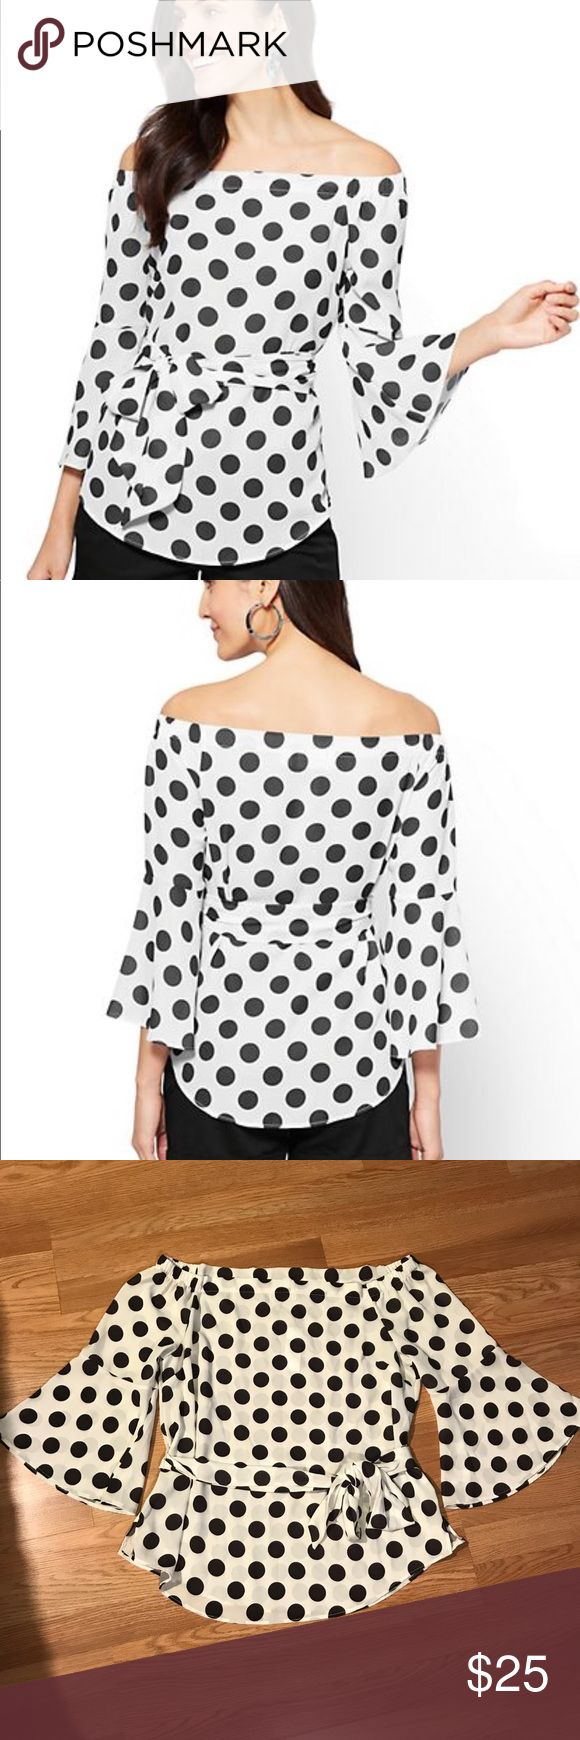 New York & Company 7th Avenue Off the Shoulder Top Nwt. White with black Polka dots. Off the shoulder silhouettes and flounced sleeves finished with a waist defining self tie belt. Off the shoulder neckline. Darts at bustline. Self-tie belt at waist. Side slits. Semi-sheer. Bracelet length with flounce sleeve. Hits at the hip. 97% Polyester 3% Spandex. Size Large New York & Company Tops Blouses